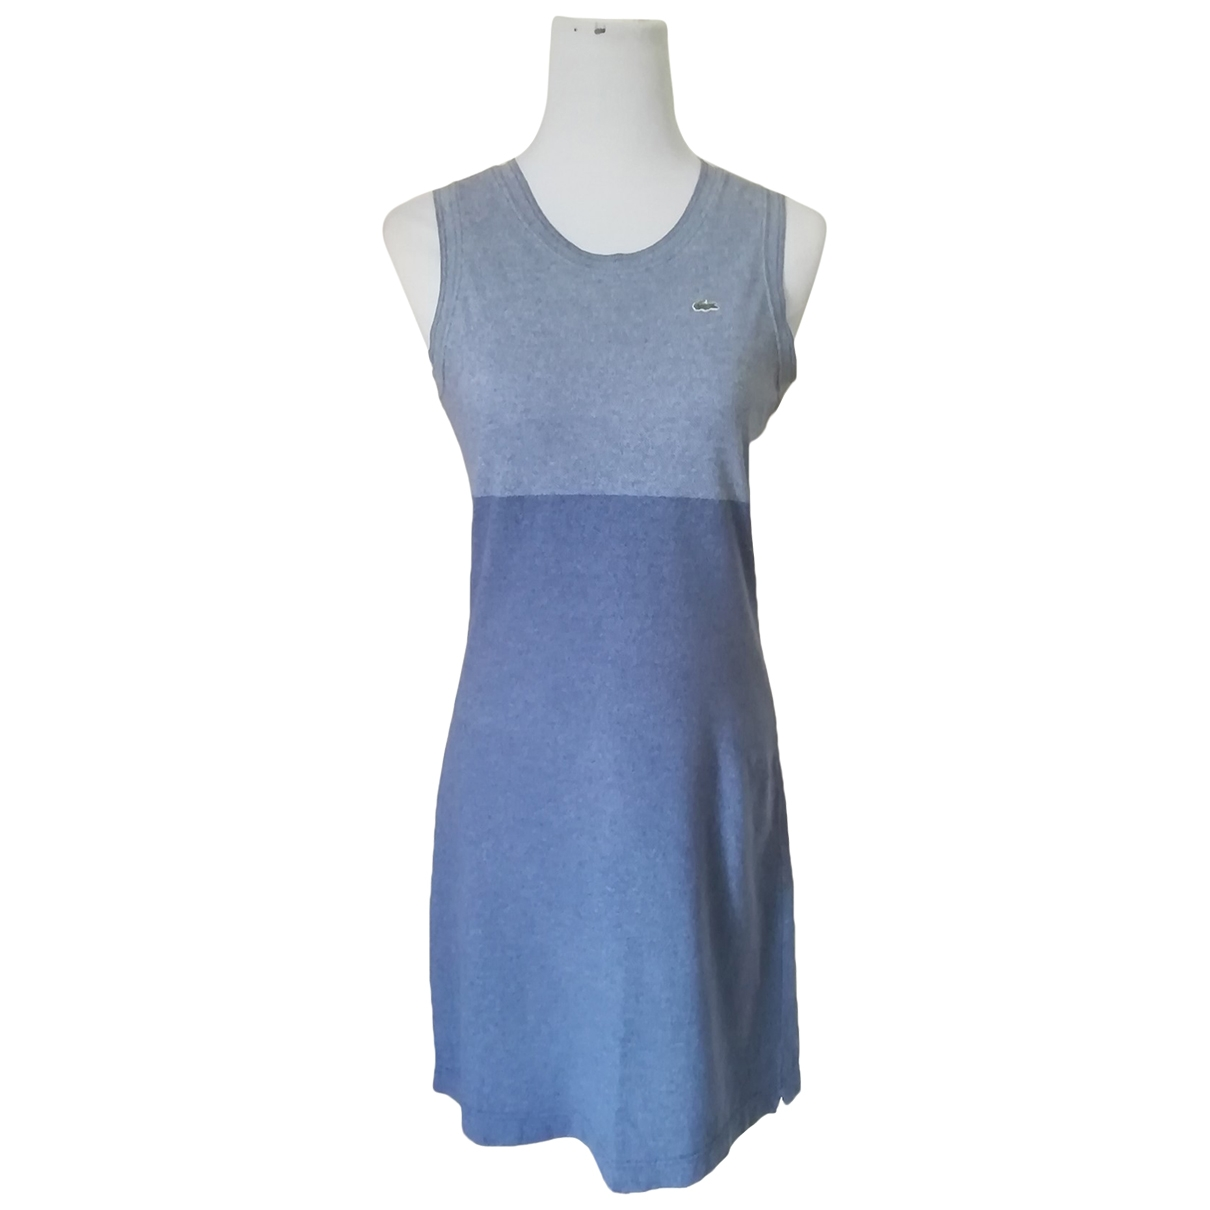 Lacoste \N Blue Cotton dress for Women 42 FR